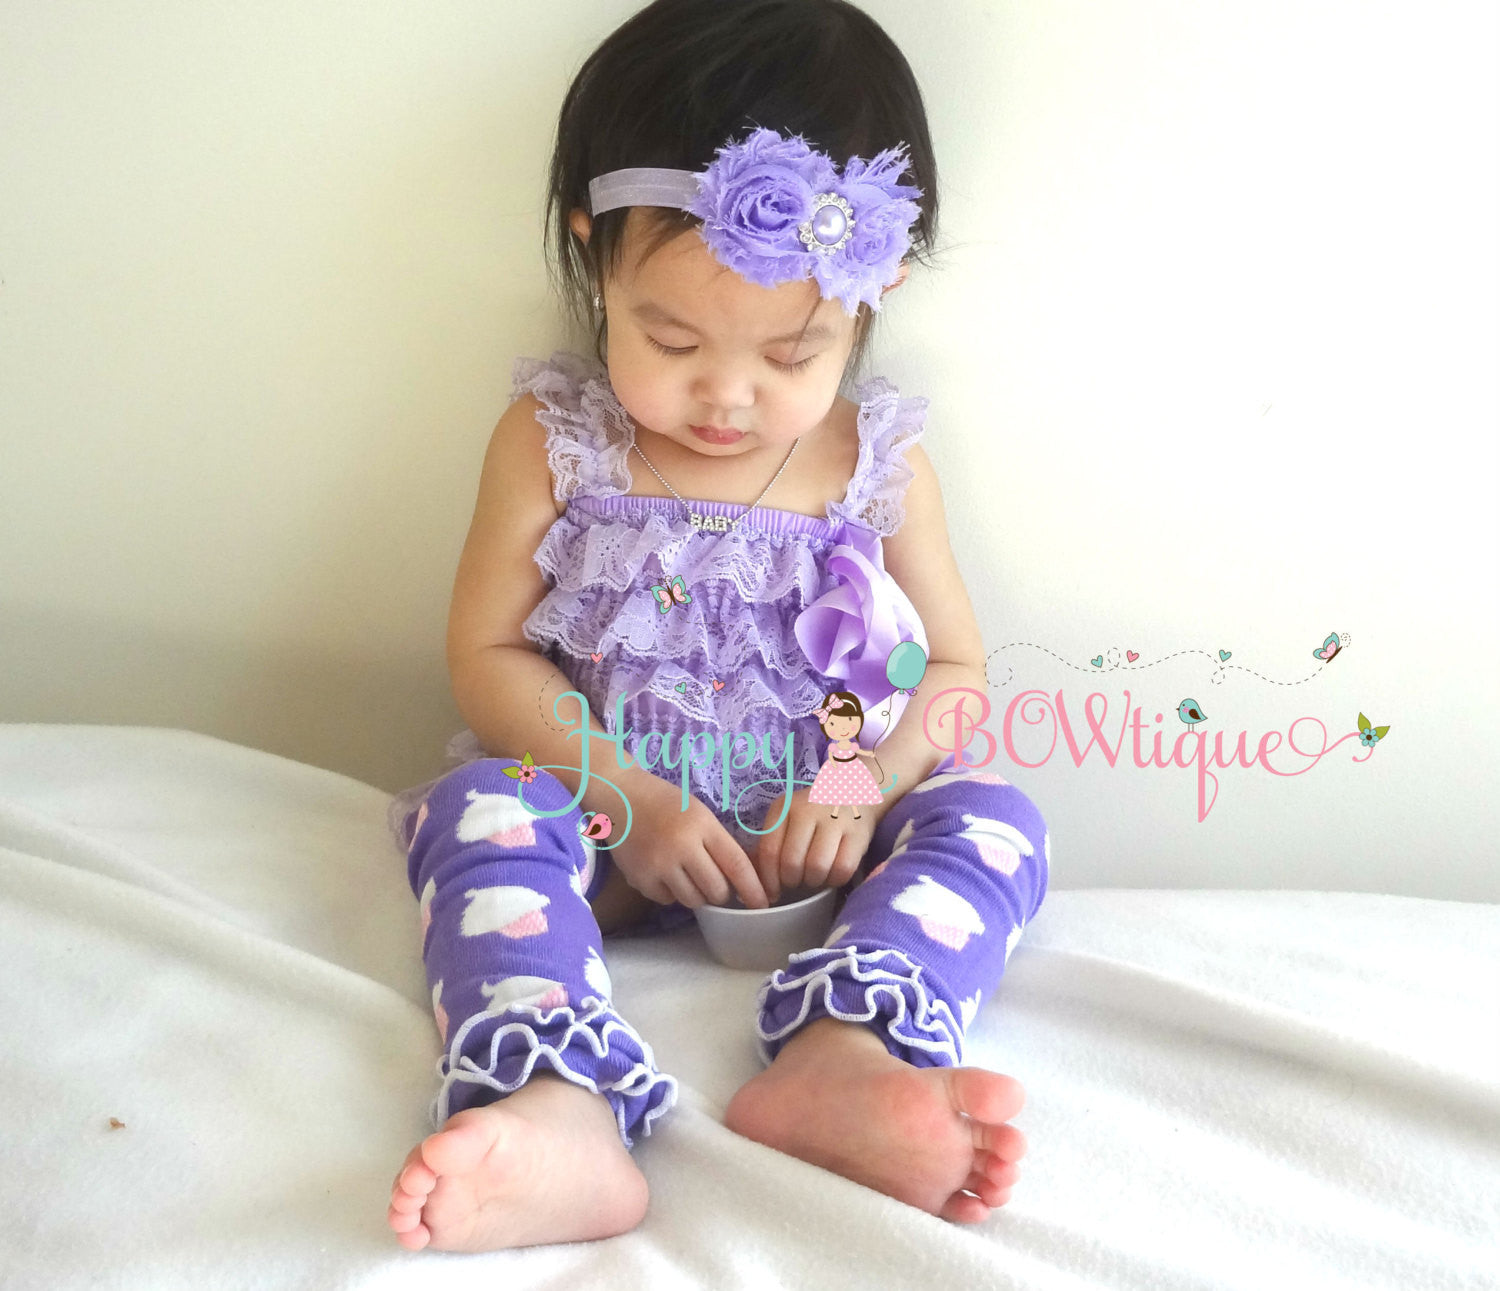 3pcs Easter set, Lavender Easter Romper set, Happy BOWtique, baby rompers